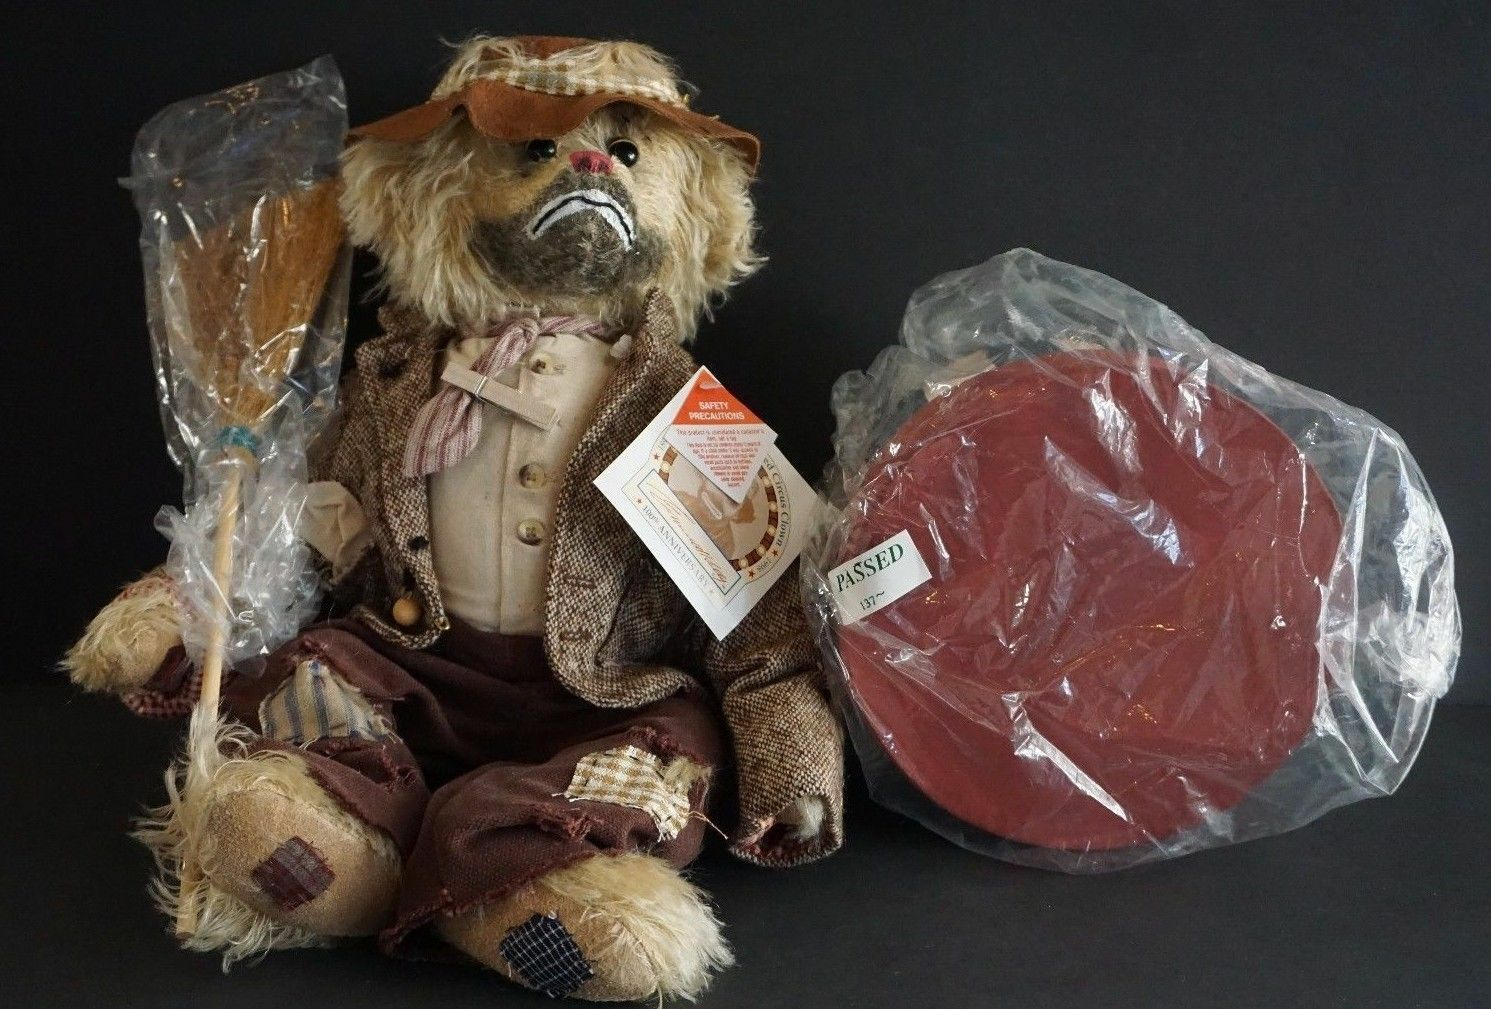 Emmet Kelly By Cooperstown Bears 100th Anniversary Mohair Bear - Rare 344/1000